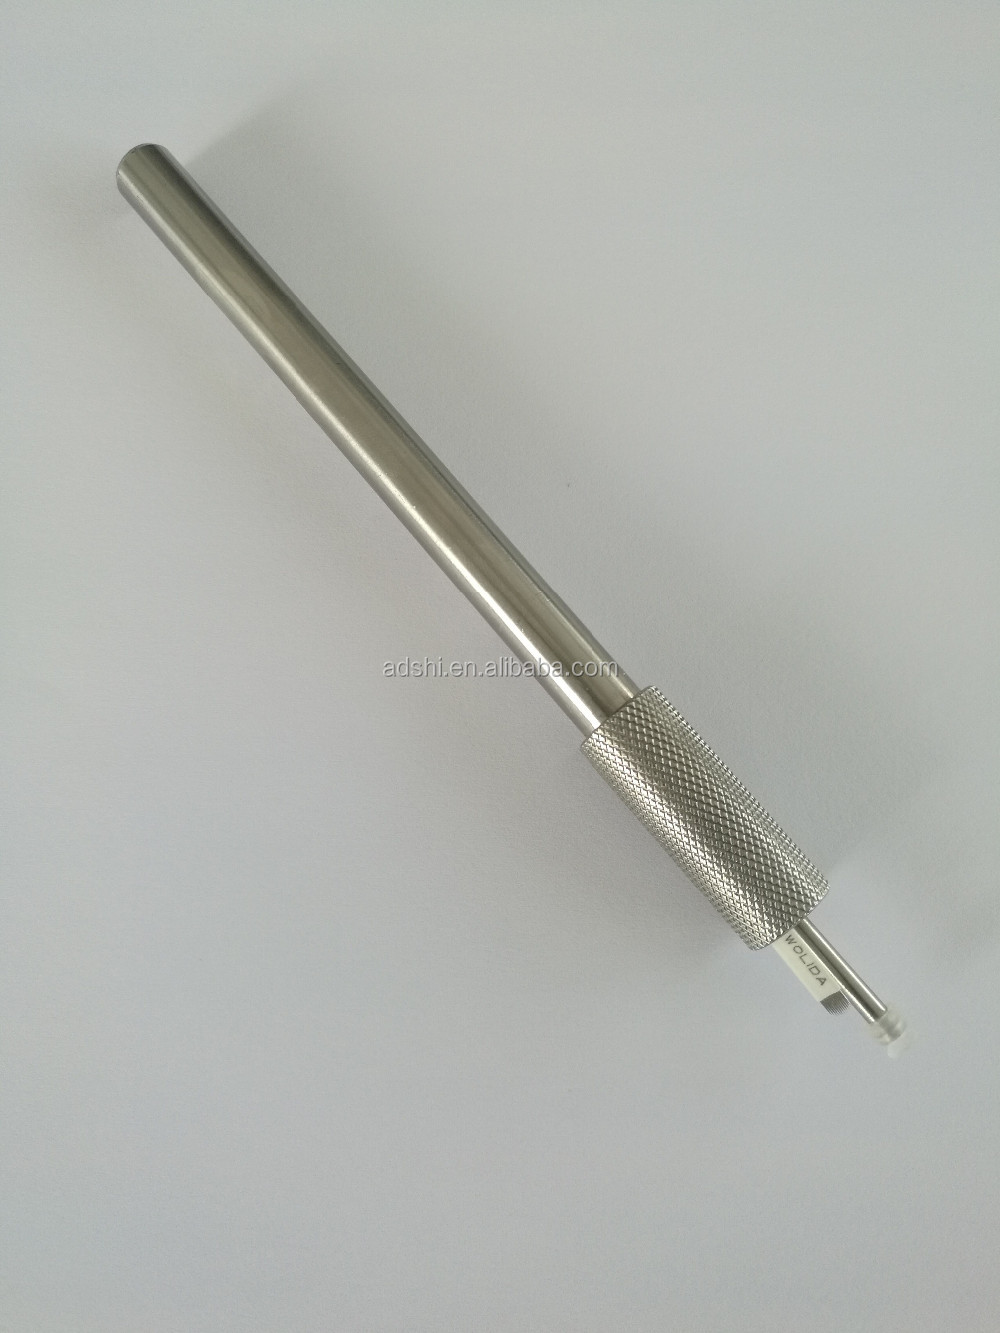 Heavy Silver Eyebrow Tattoo Pen SS Autoclavable Permanent Makeup microblading Tools